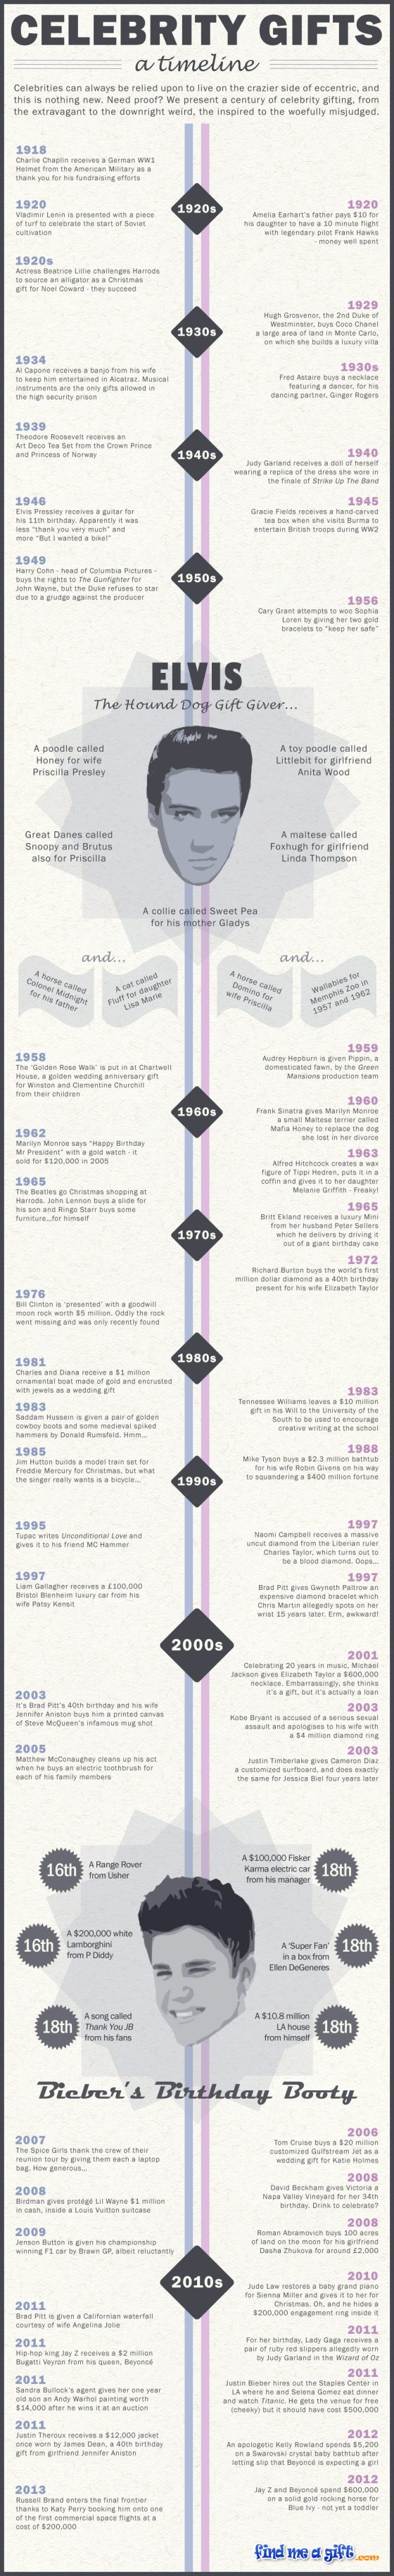 Celebrity Gifts - A Timeline (Infographic)